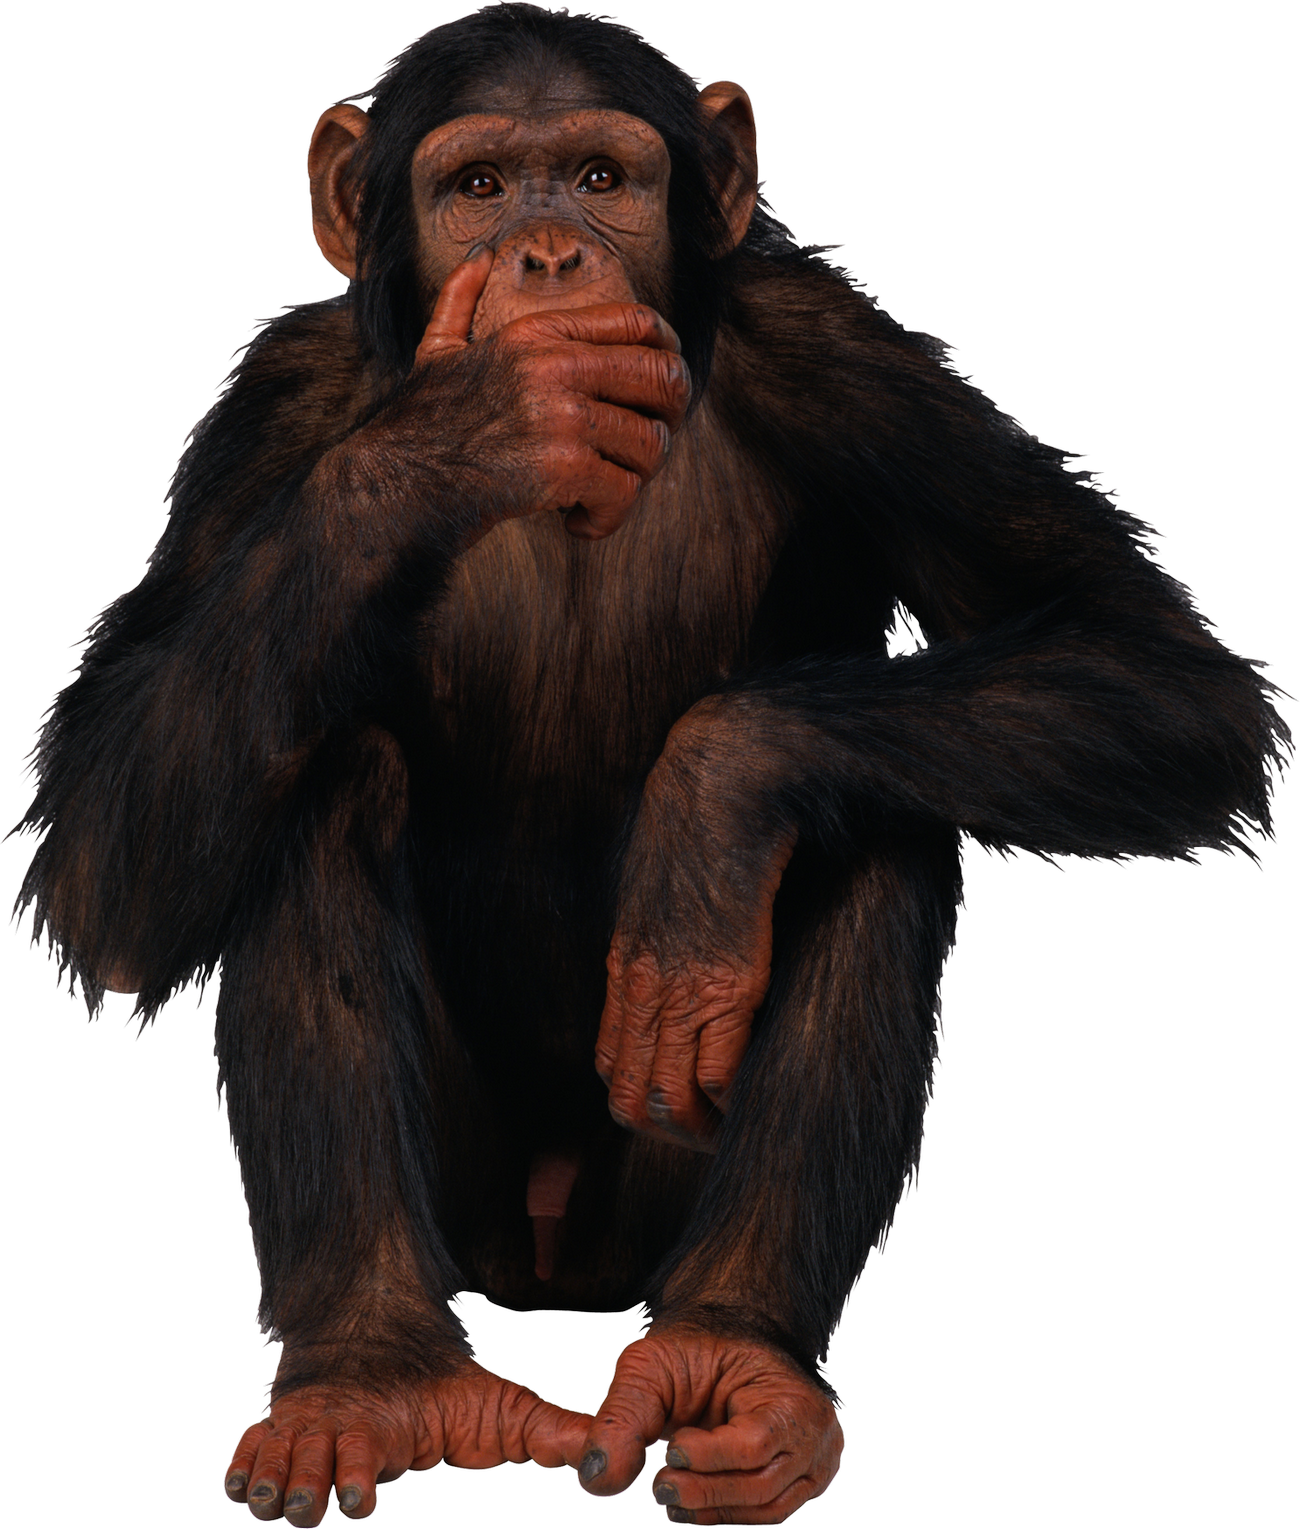 Clipart monkey cheeky monkey. Png web icons